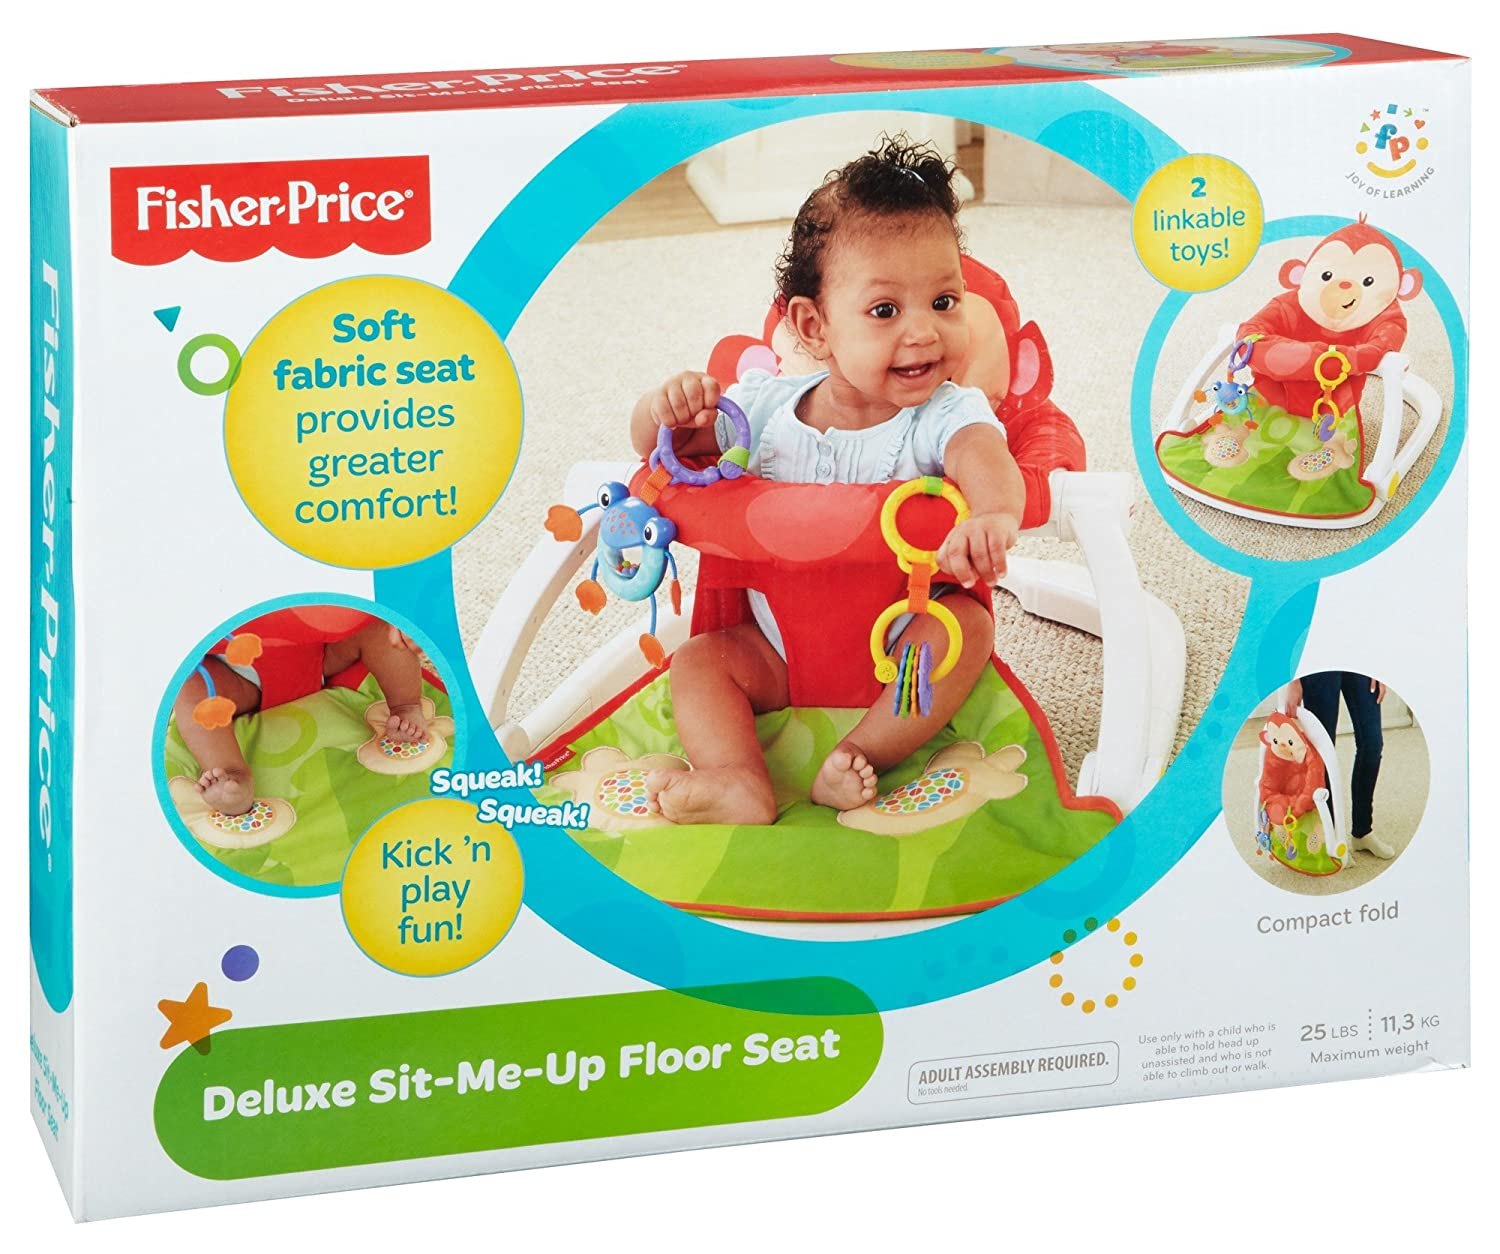 Fisher-Price Deluxe Sit-Me-Up Floor Seat Mattel Fisher-Price BFB15